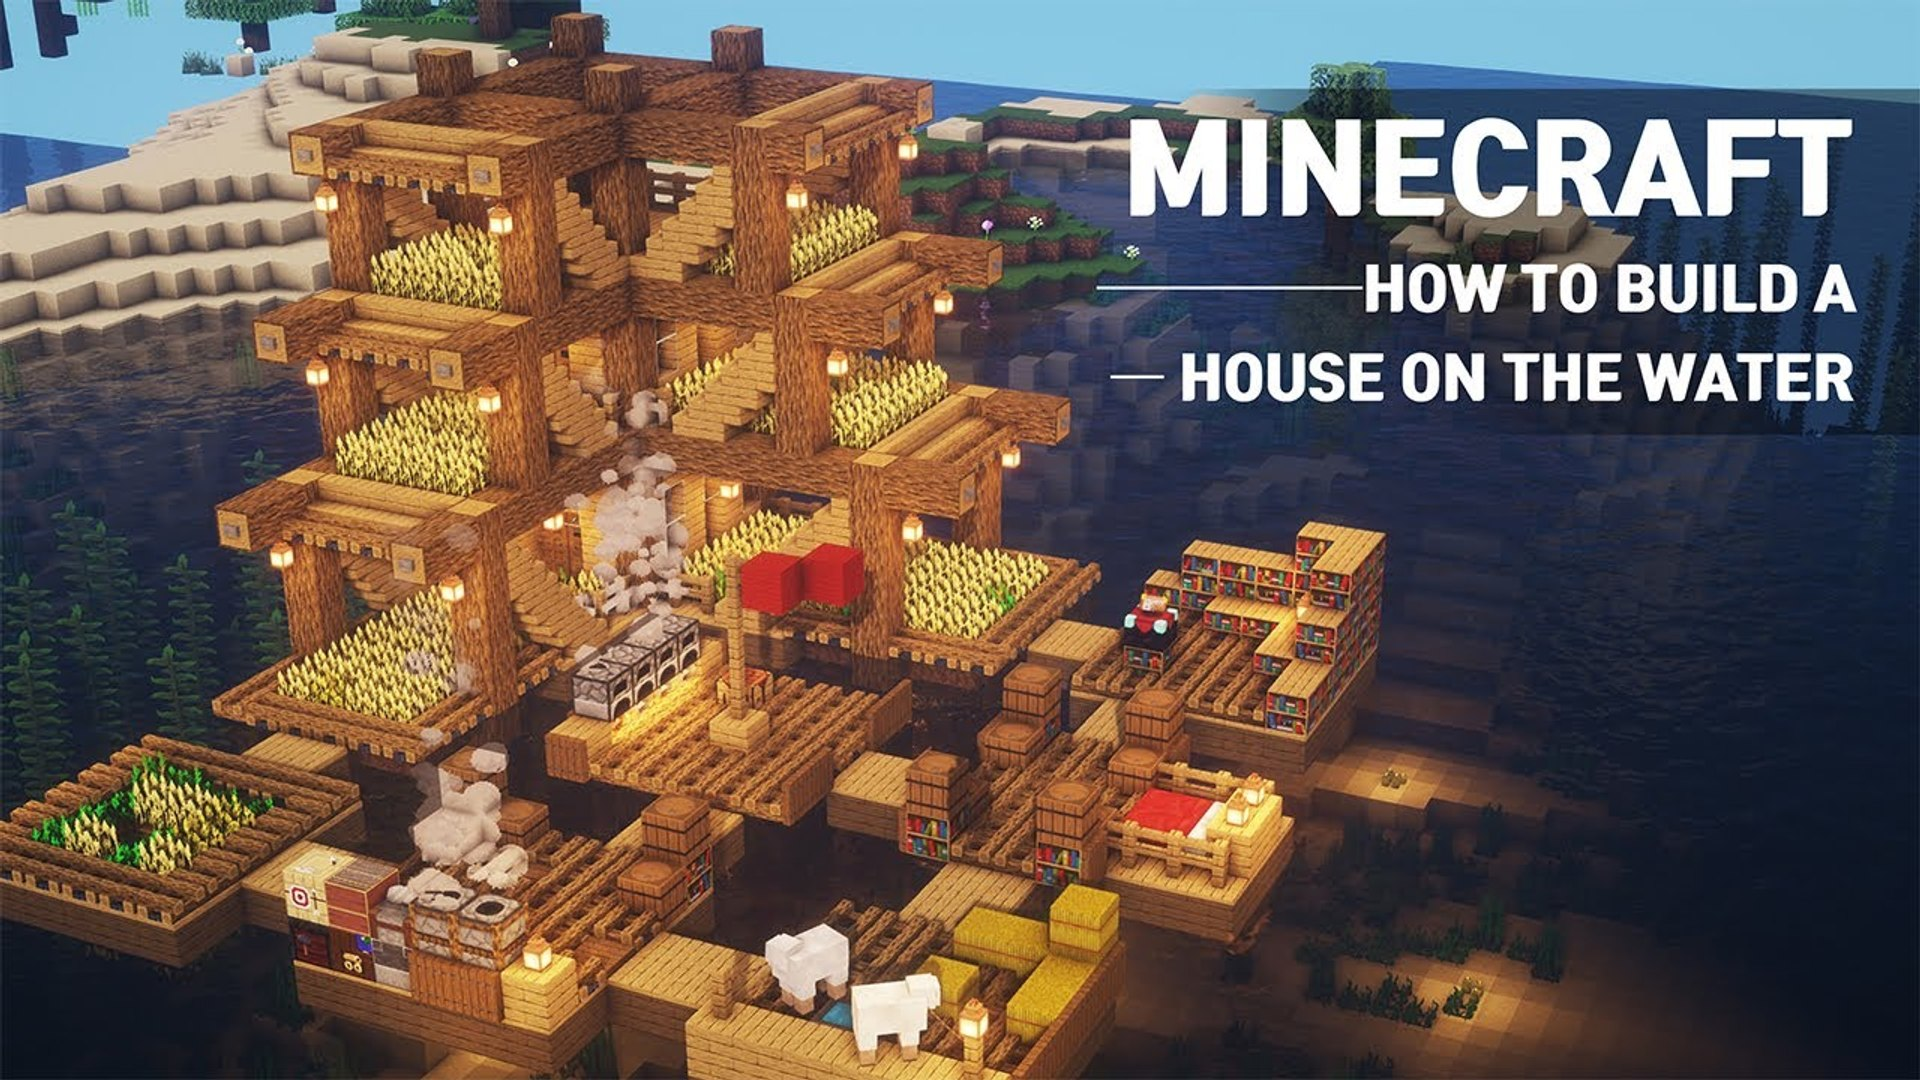 How to Build a Survival House on Water in Minecraft - House Tutorial #12